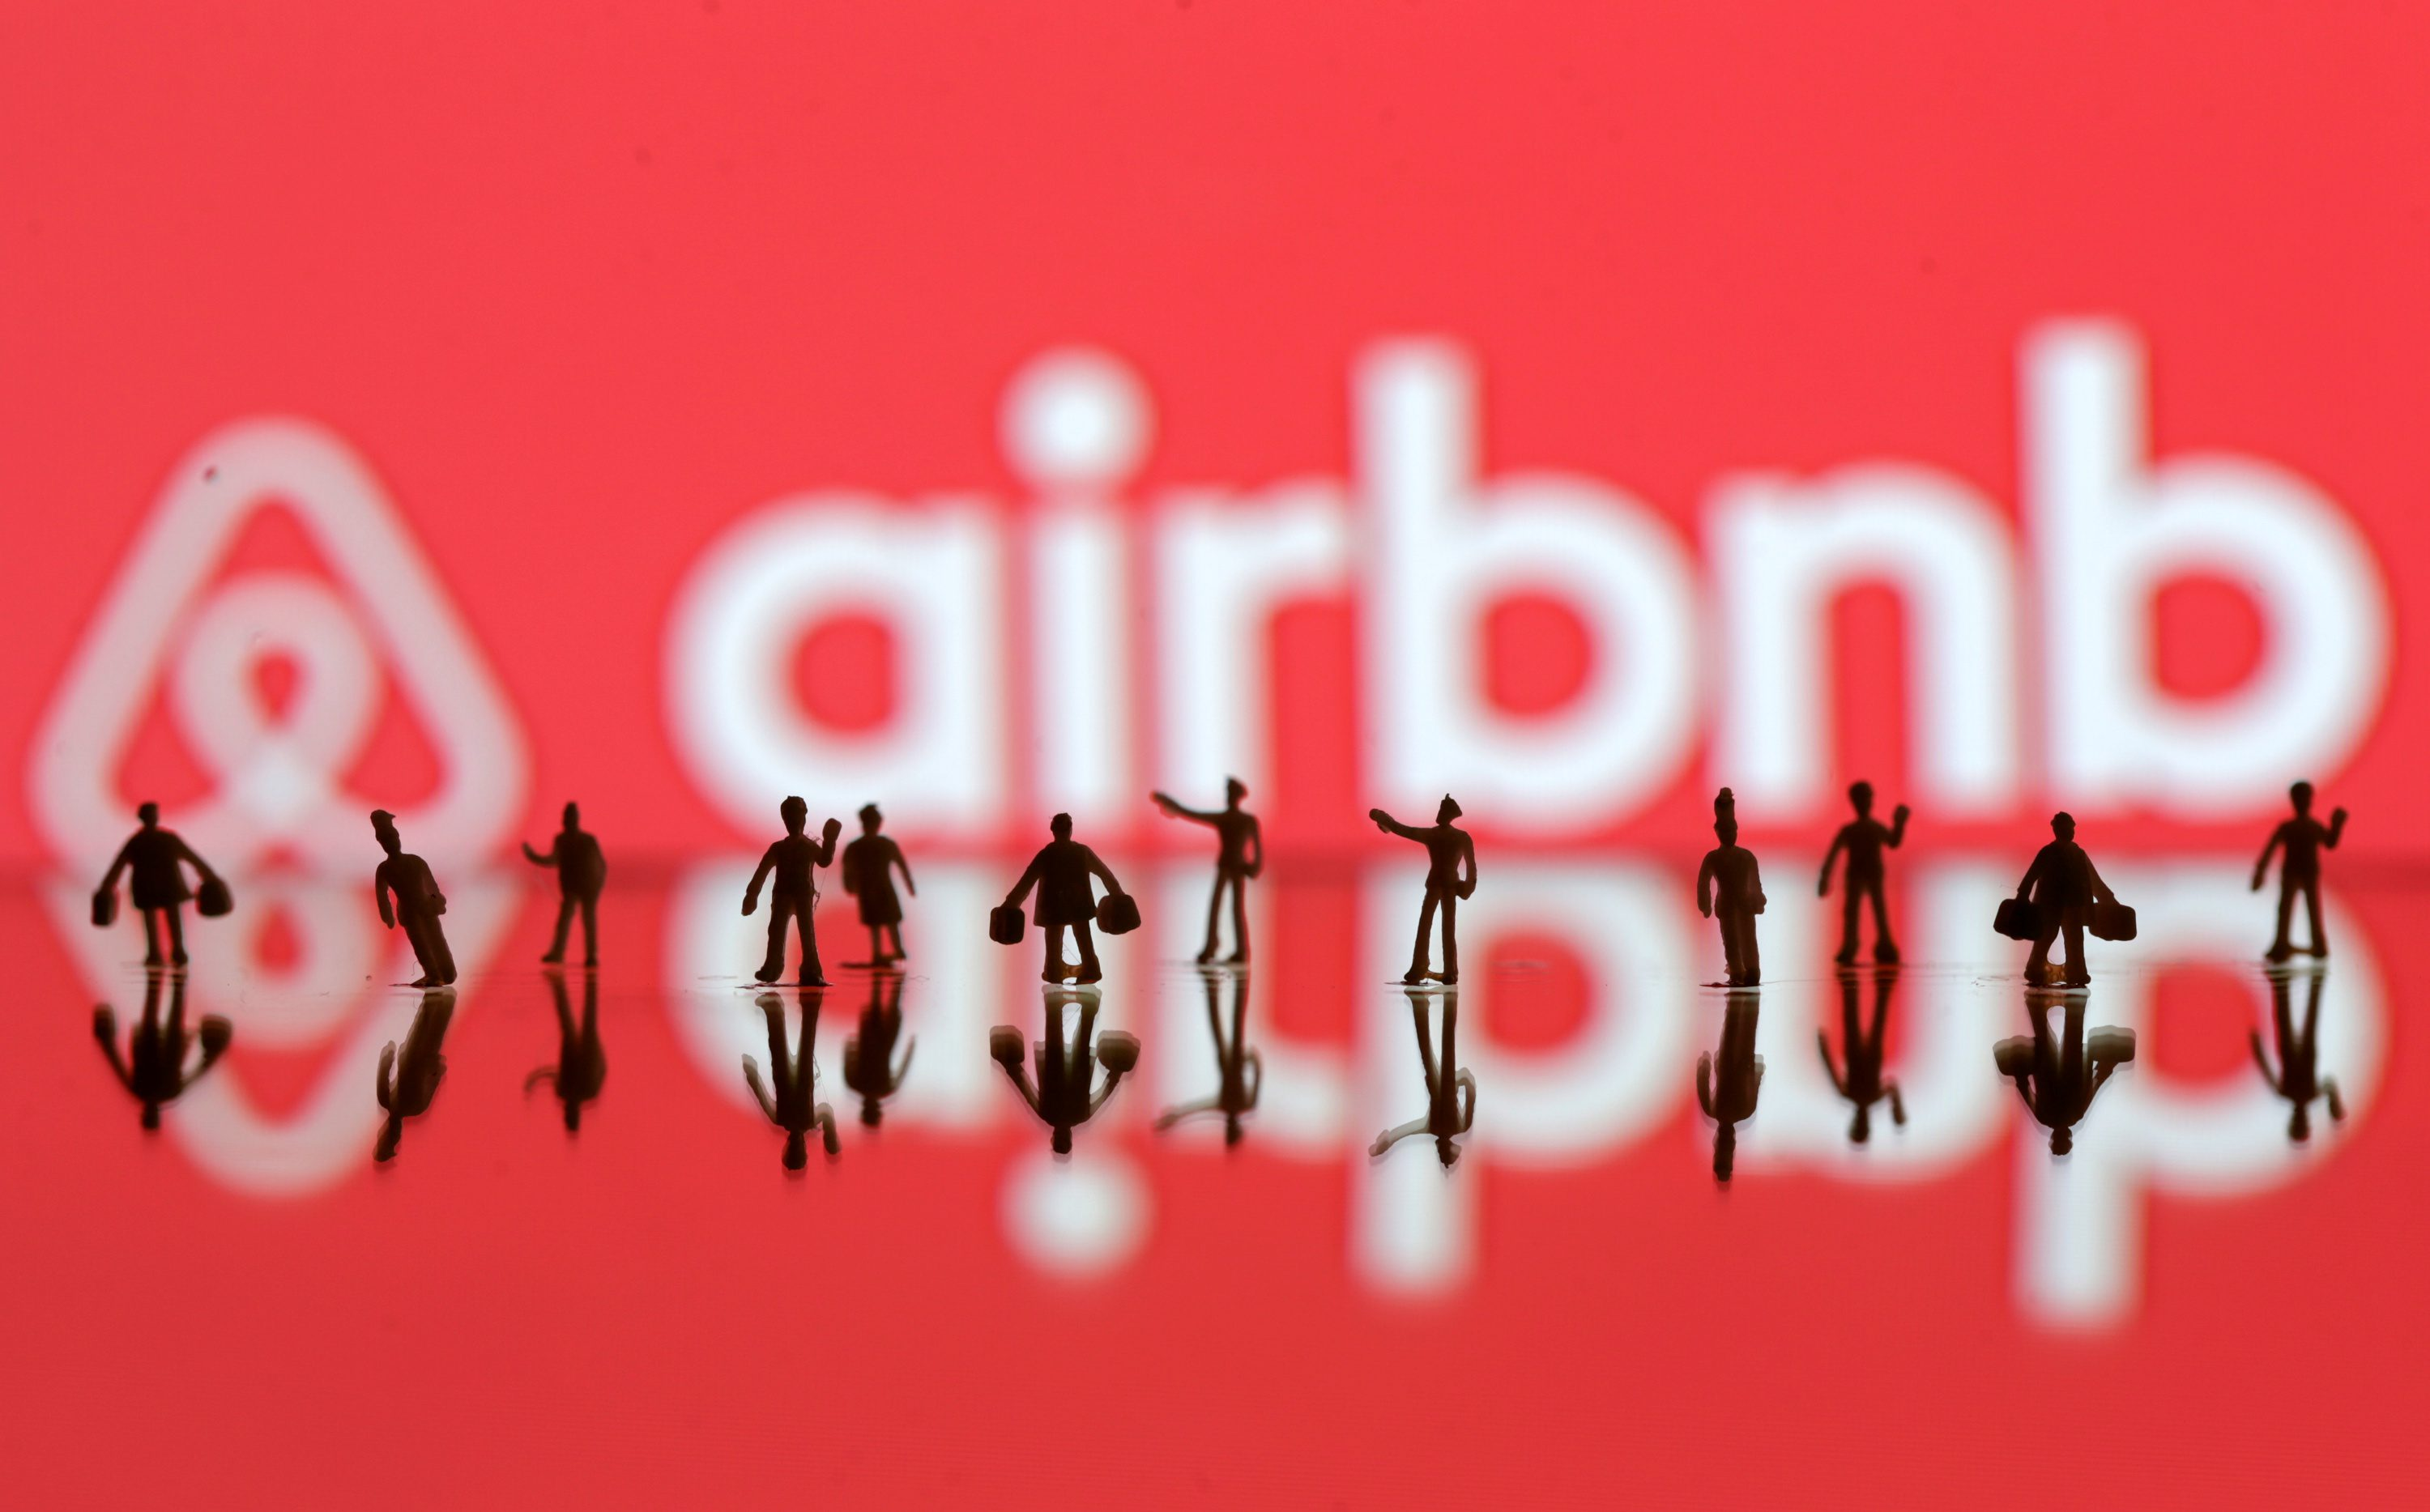 Airbnb is gradually losing one of its biggest advantages